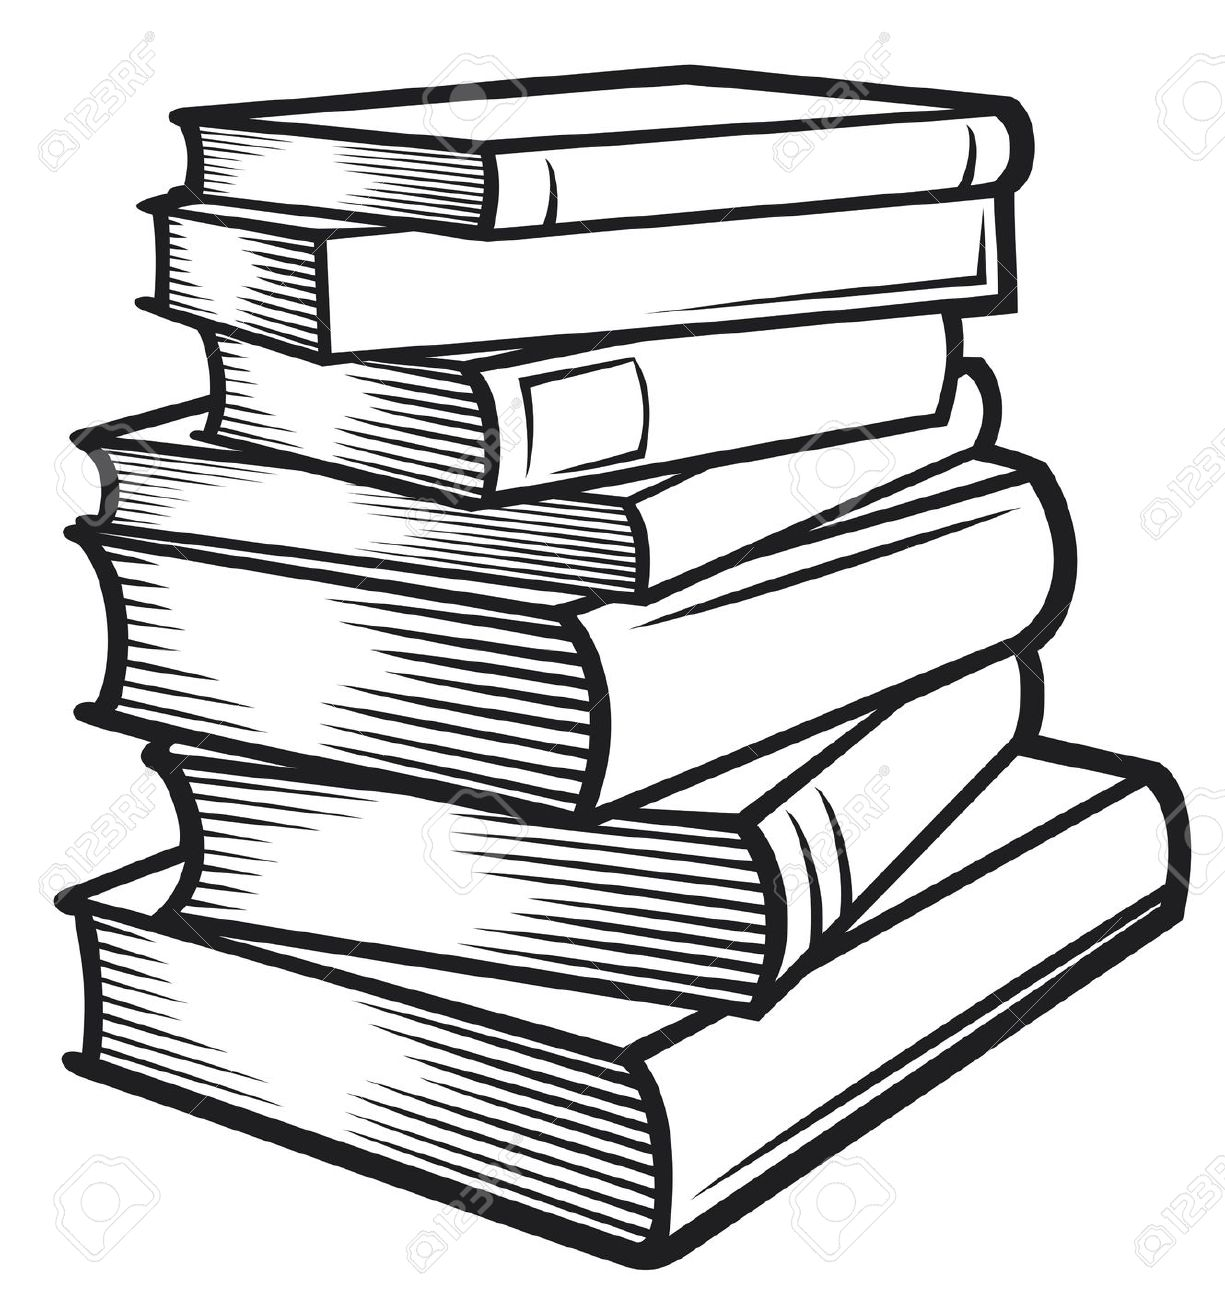 hight resolution of black and white book clipart 18181